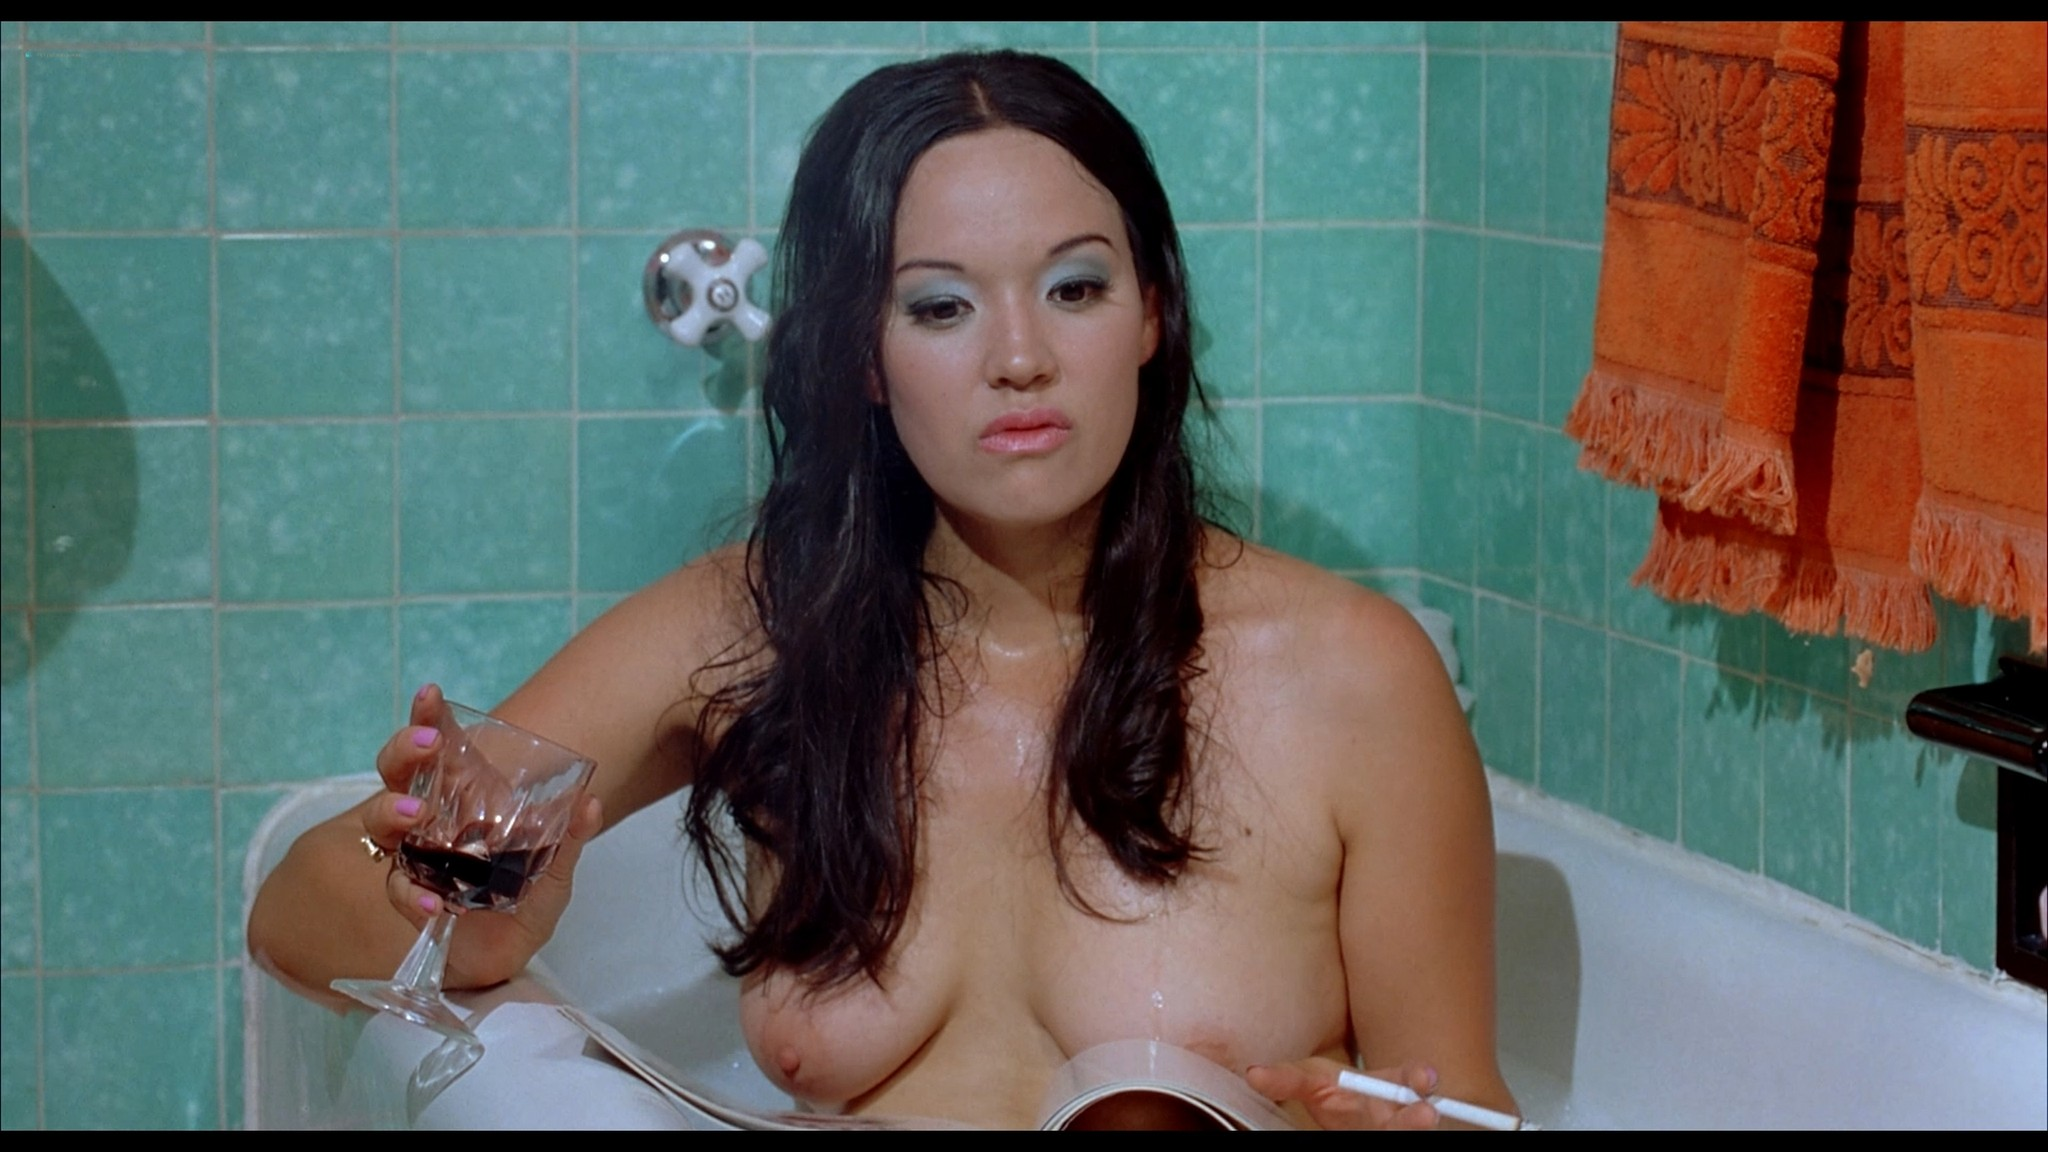 Anna Biller nude bush and sex Bridget Brno and others nude full frontal Viva 2007 1080p BluRay REMUX